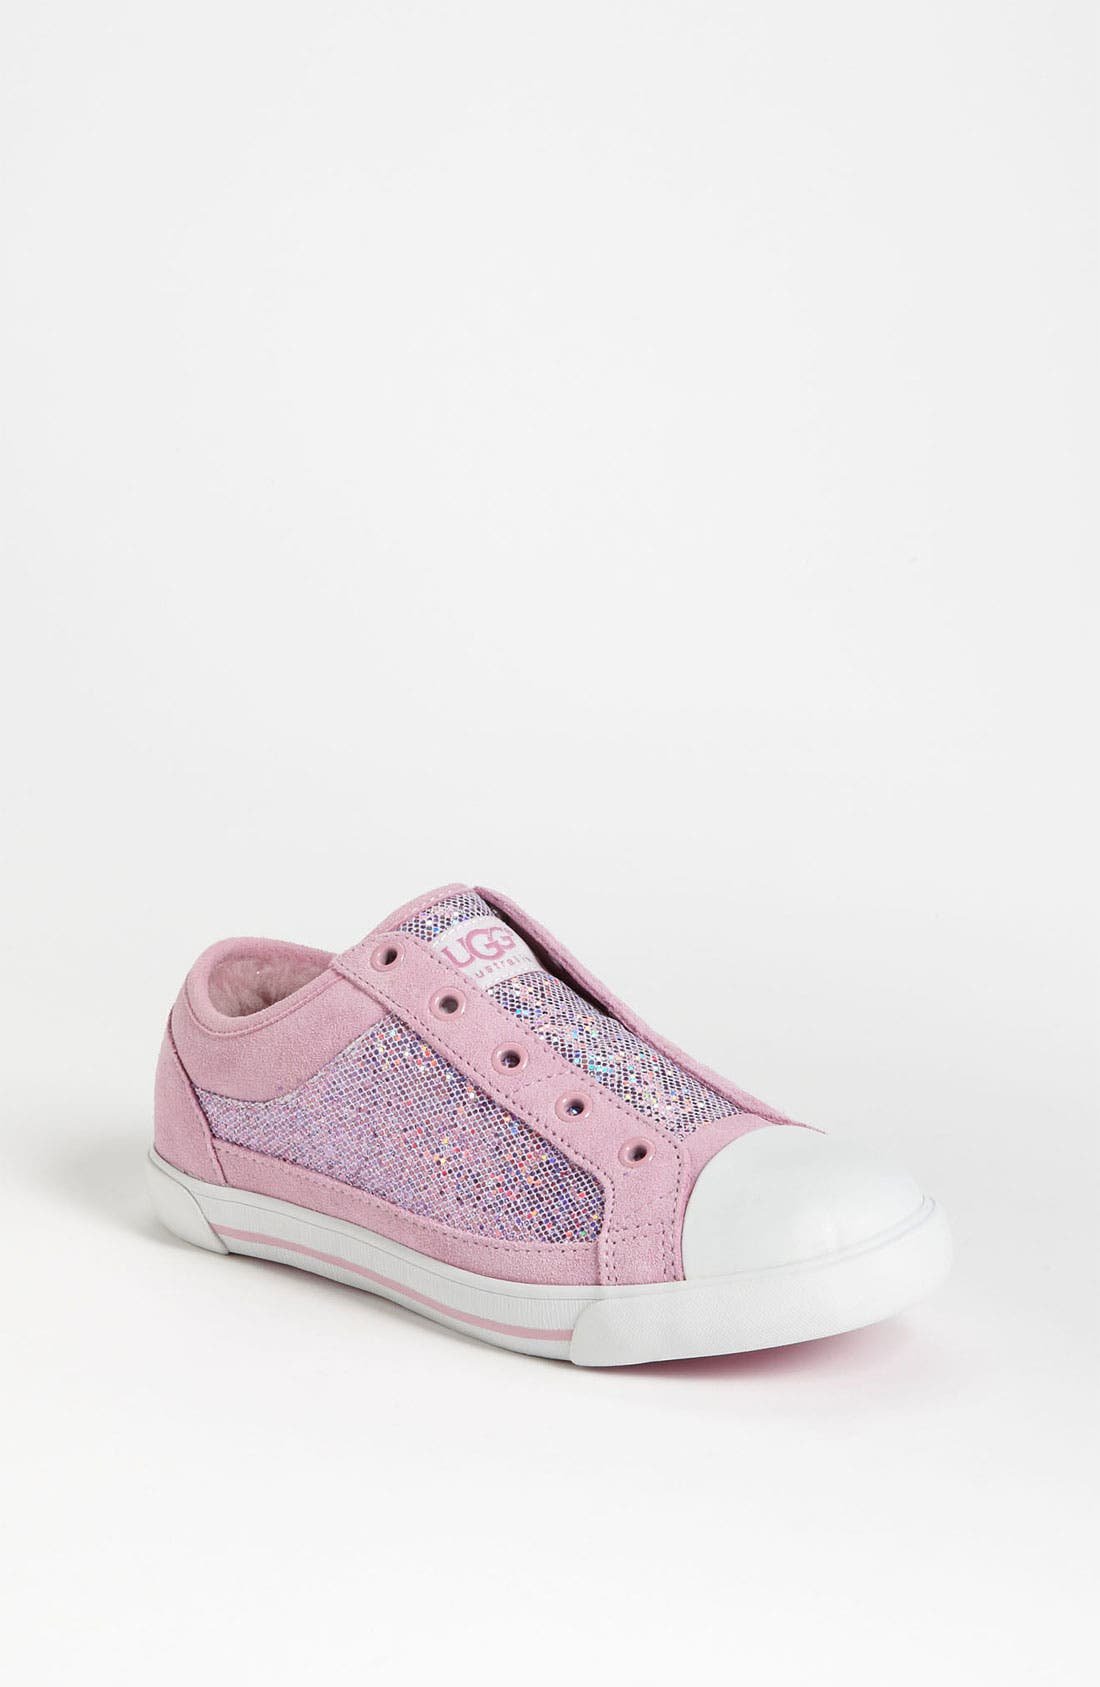 Alternate Image 1 Selected - UGG® Australia 'Laela' Sneaker (Toddler, Little Kid & Big Kid)